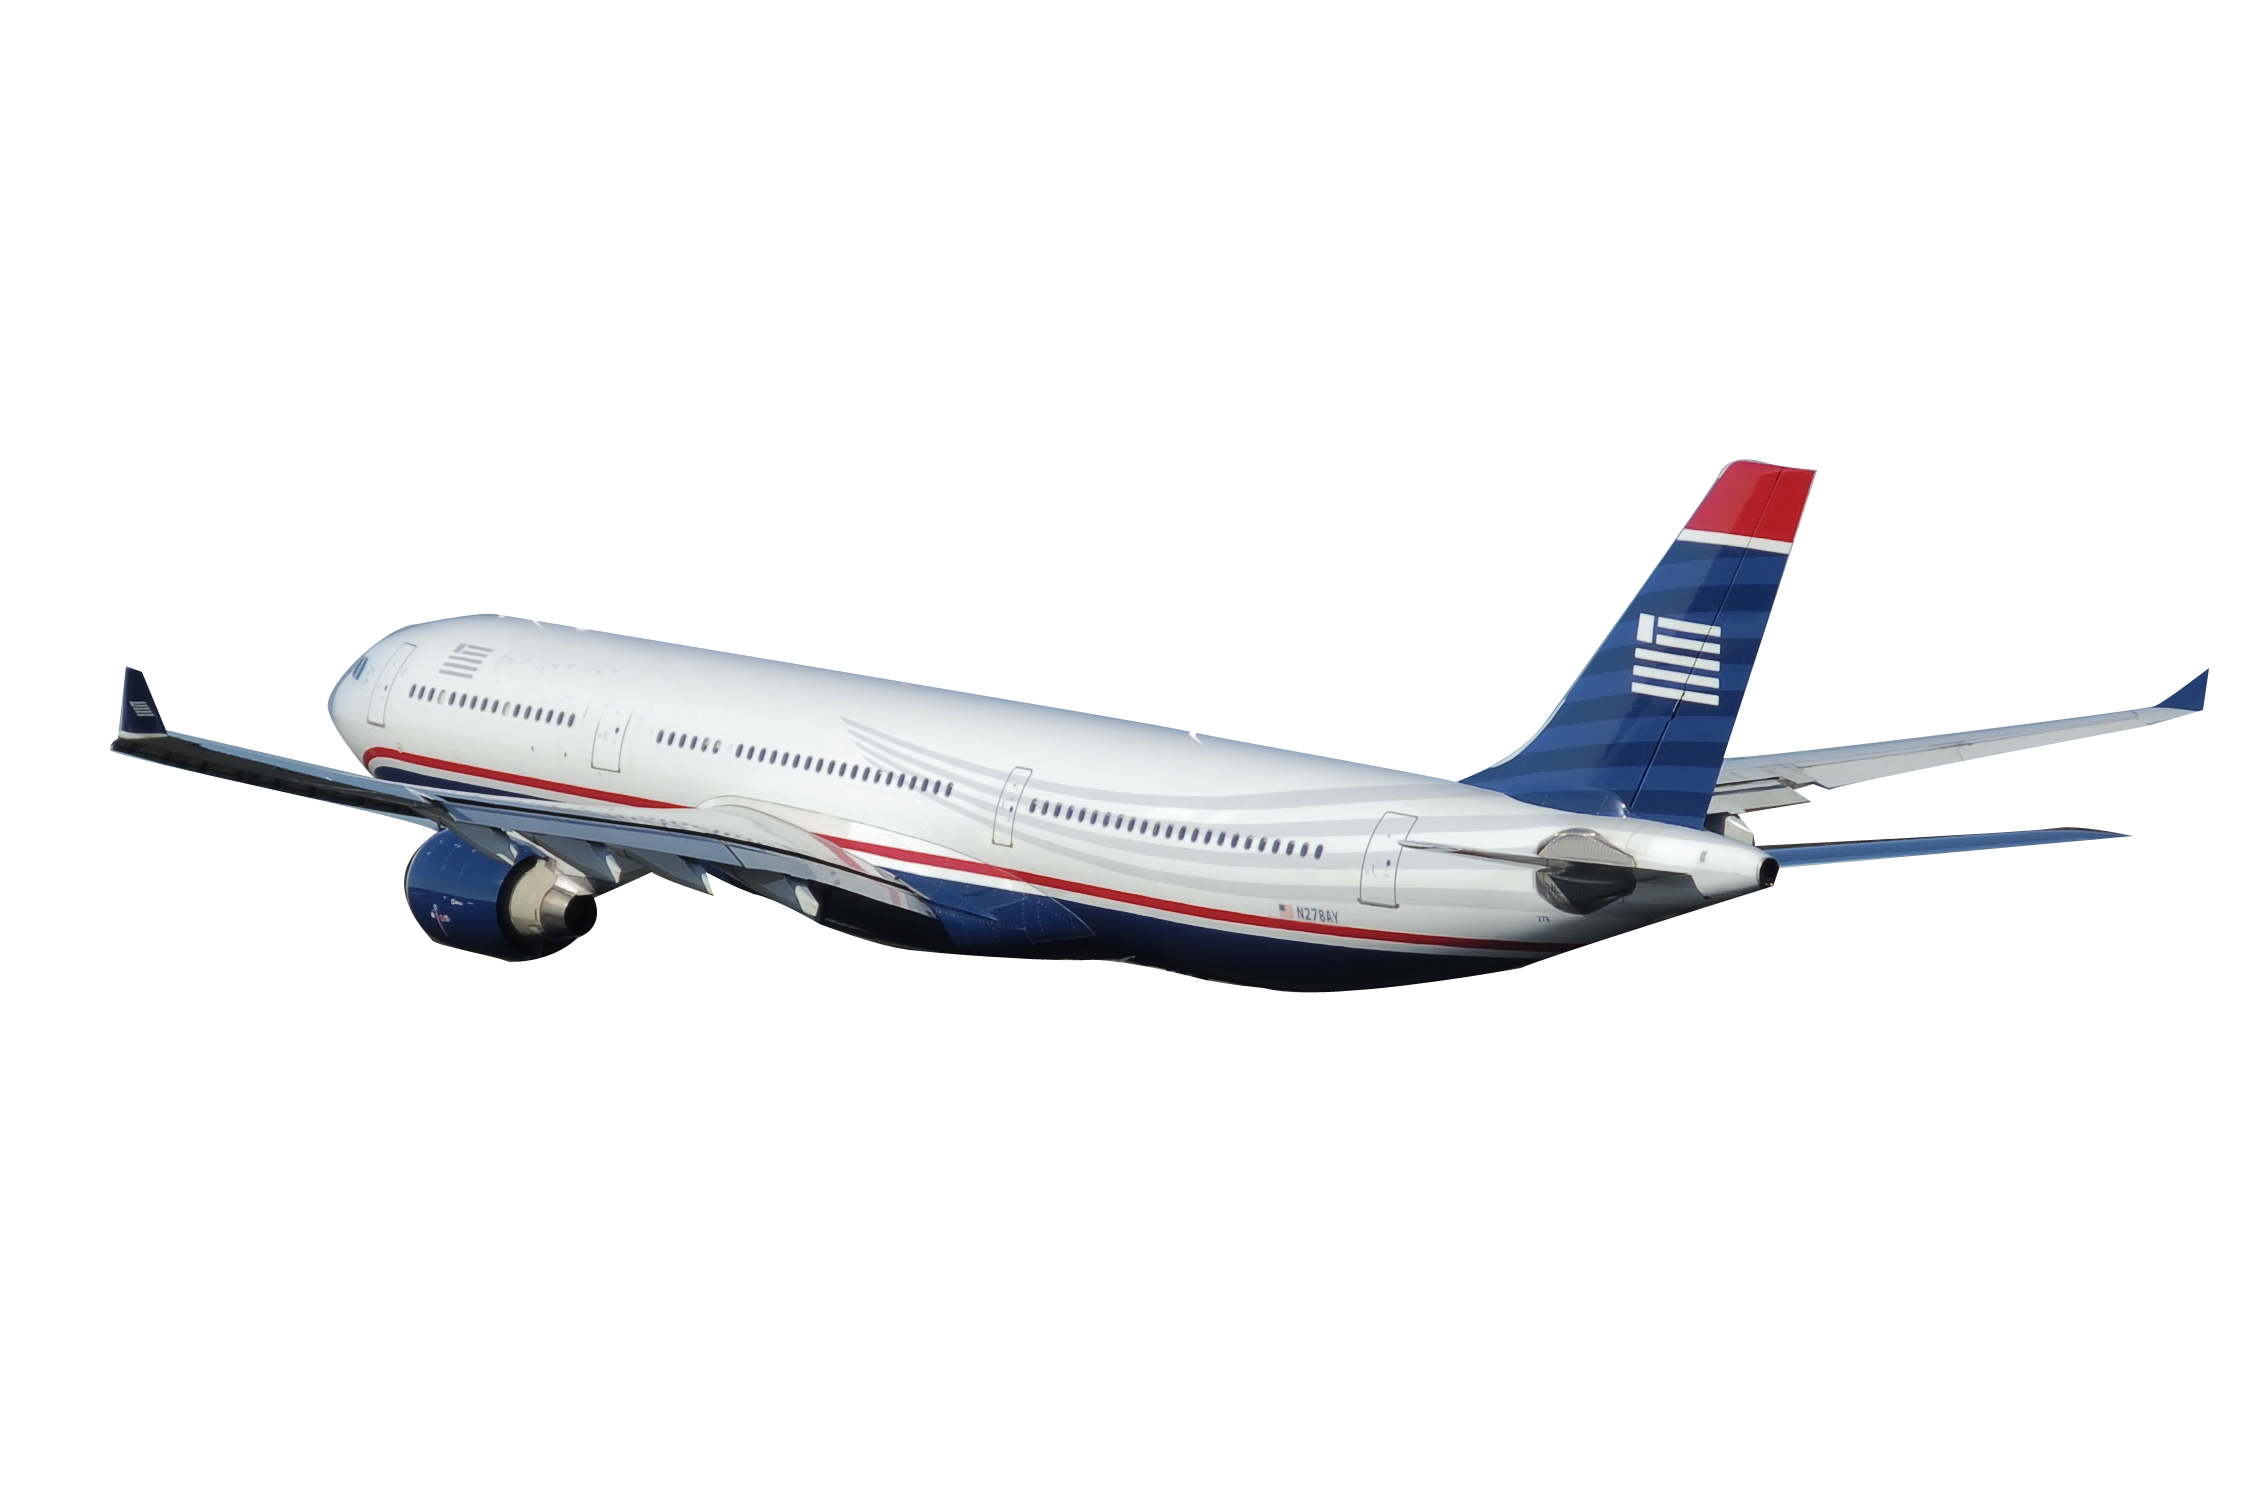 Airplane png pictures free. Clipart plane transparent background